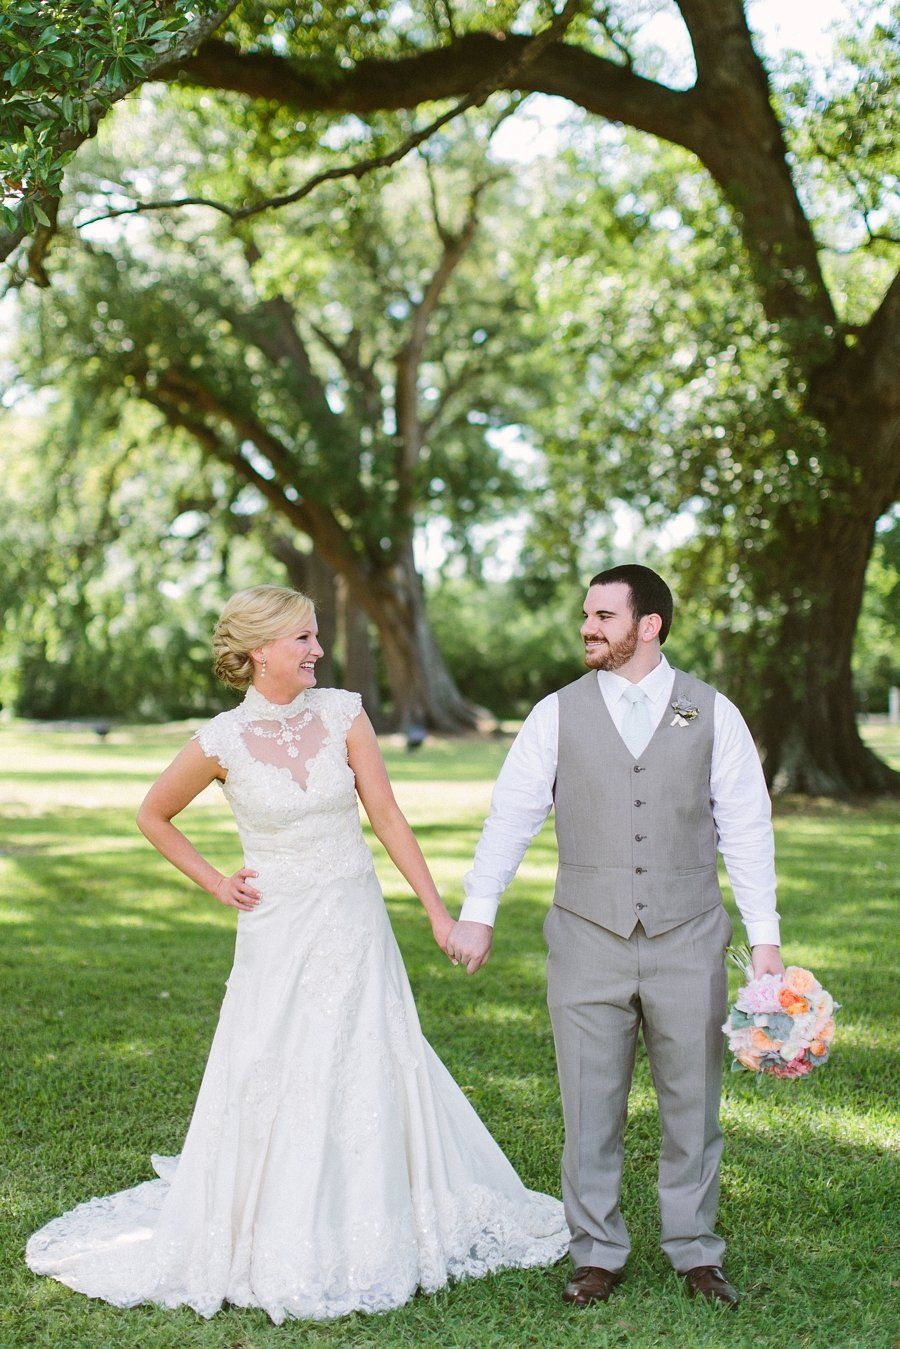 Pin on Nottoway Wedding in May May 3, 2014